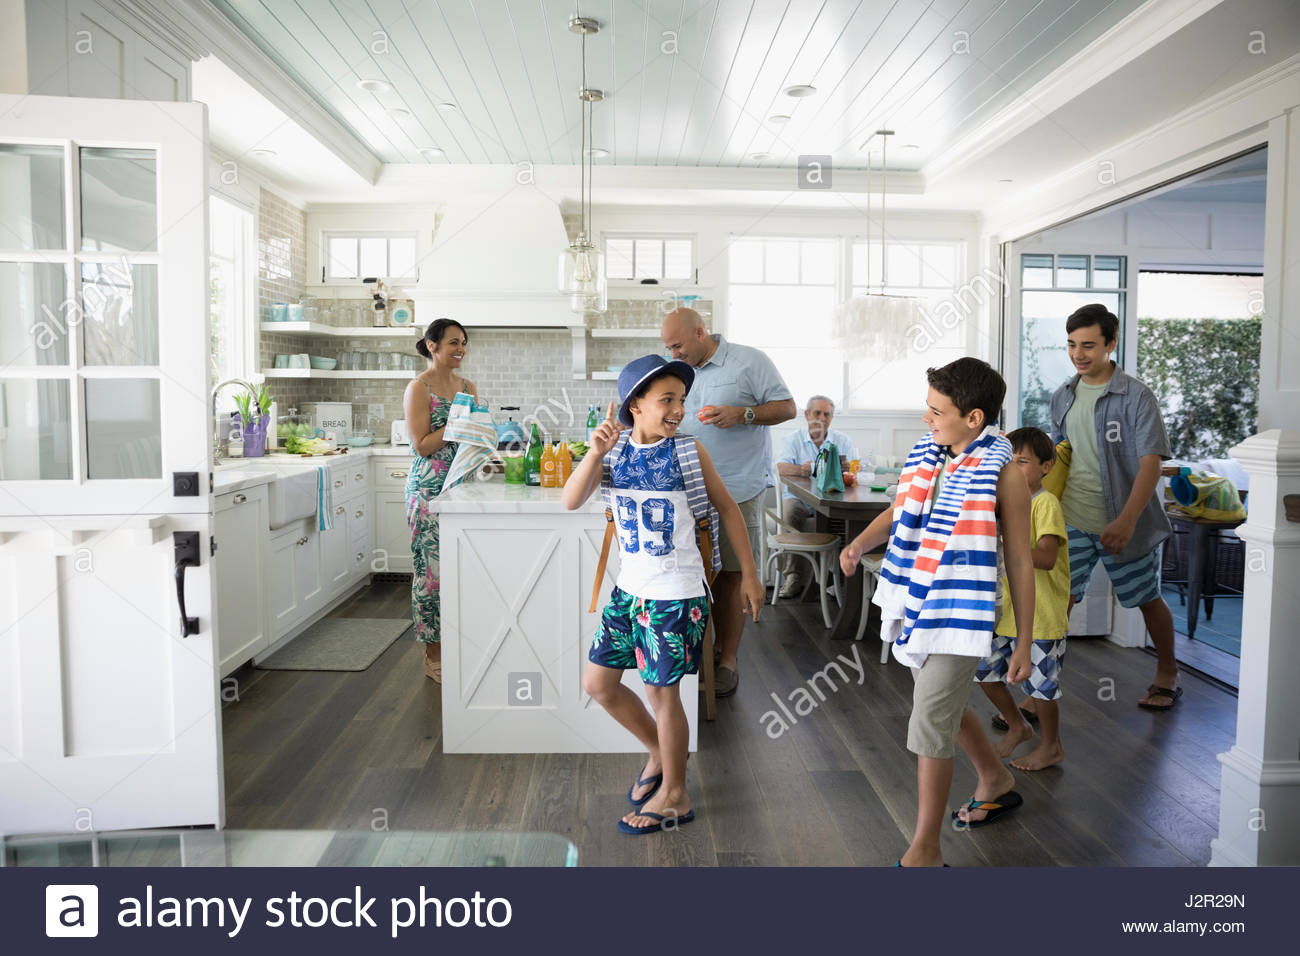 Brothers in swim trunks with beach towel leaving beach house - Stock Image